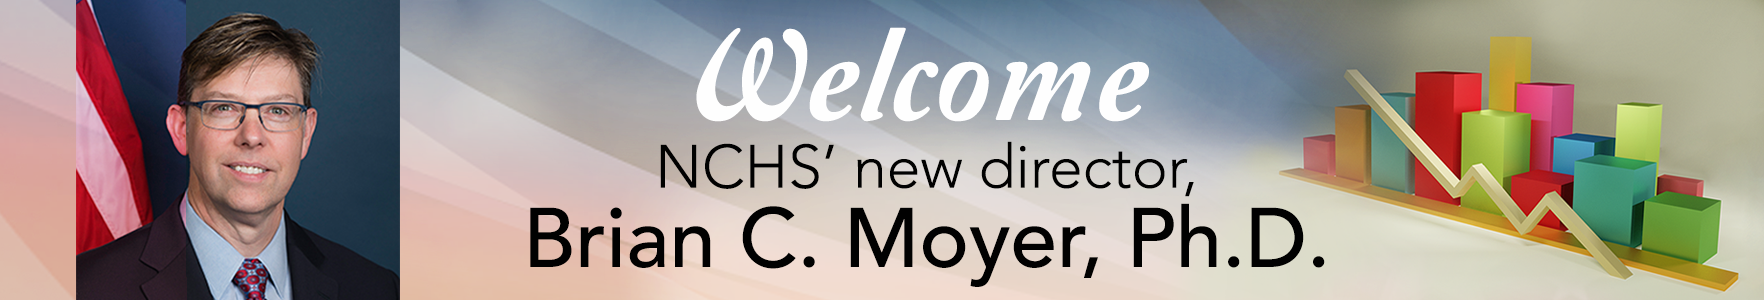 New NCHS Director